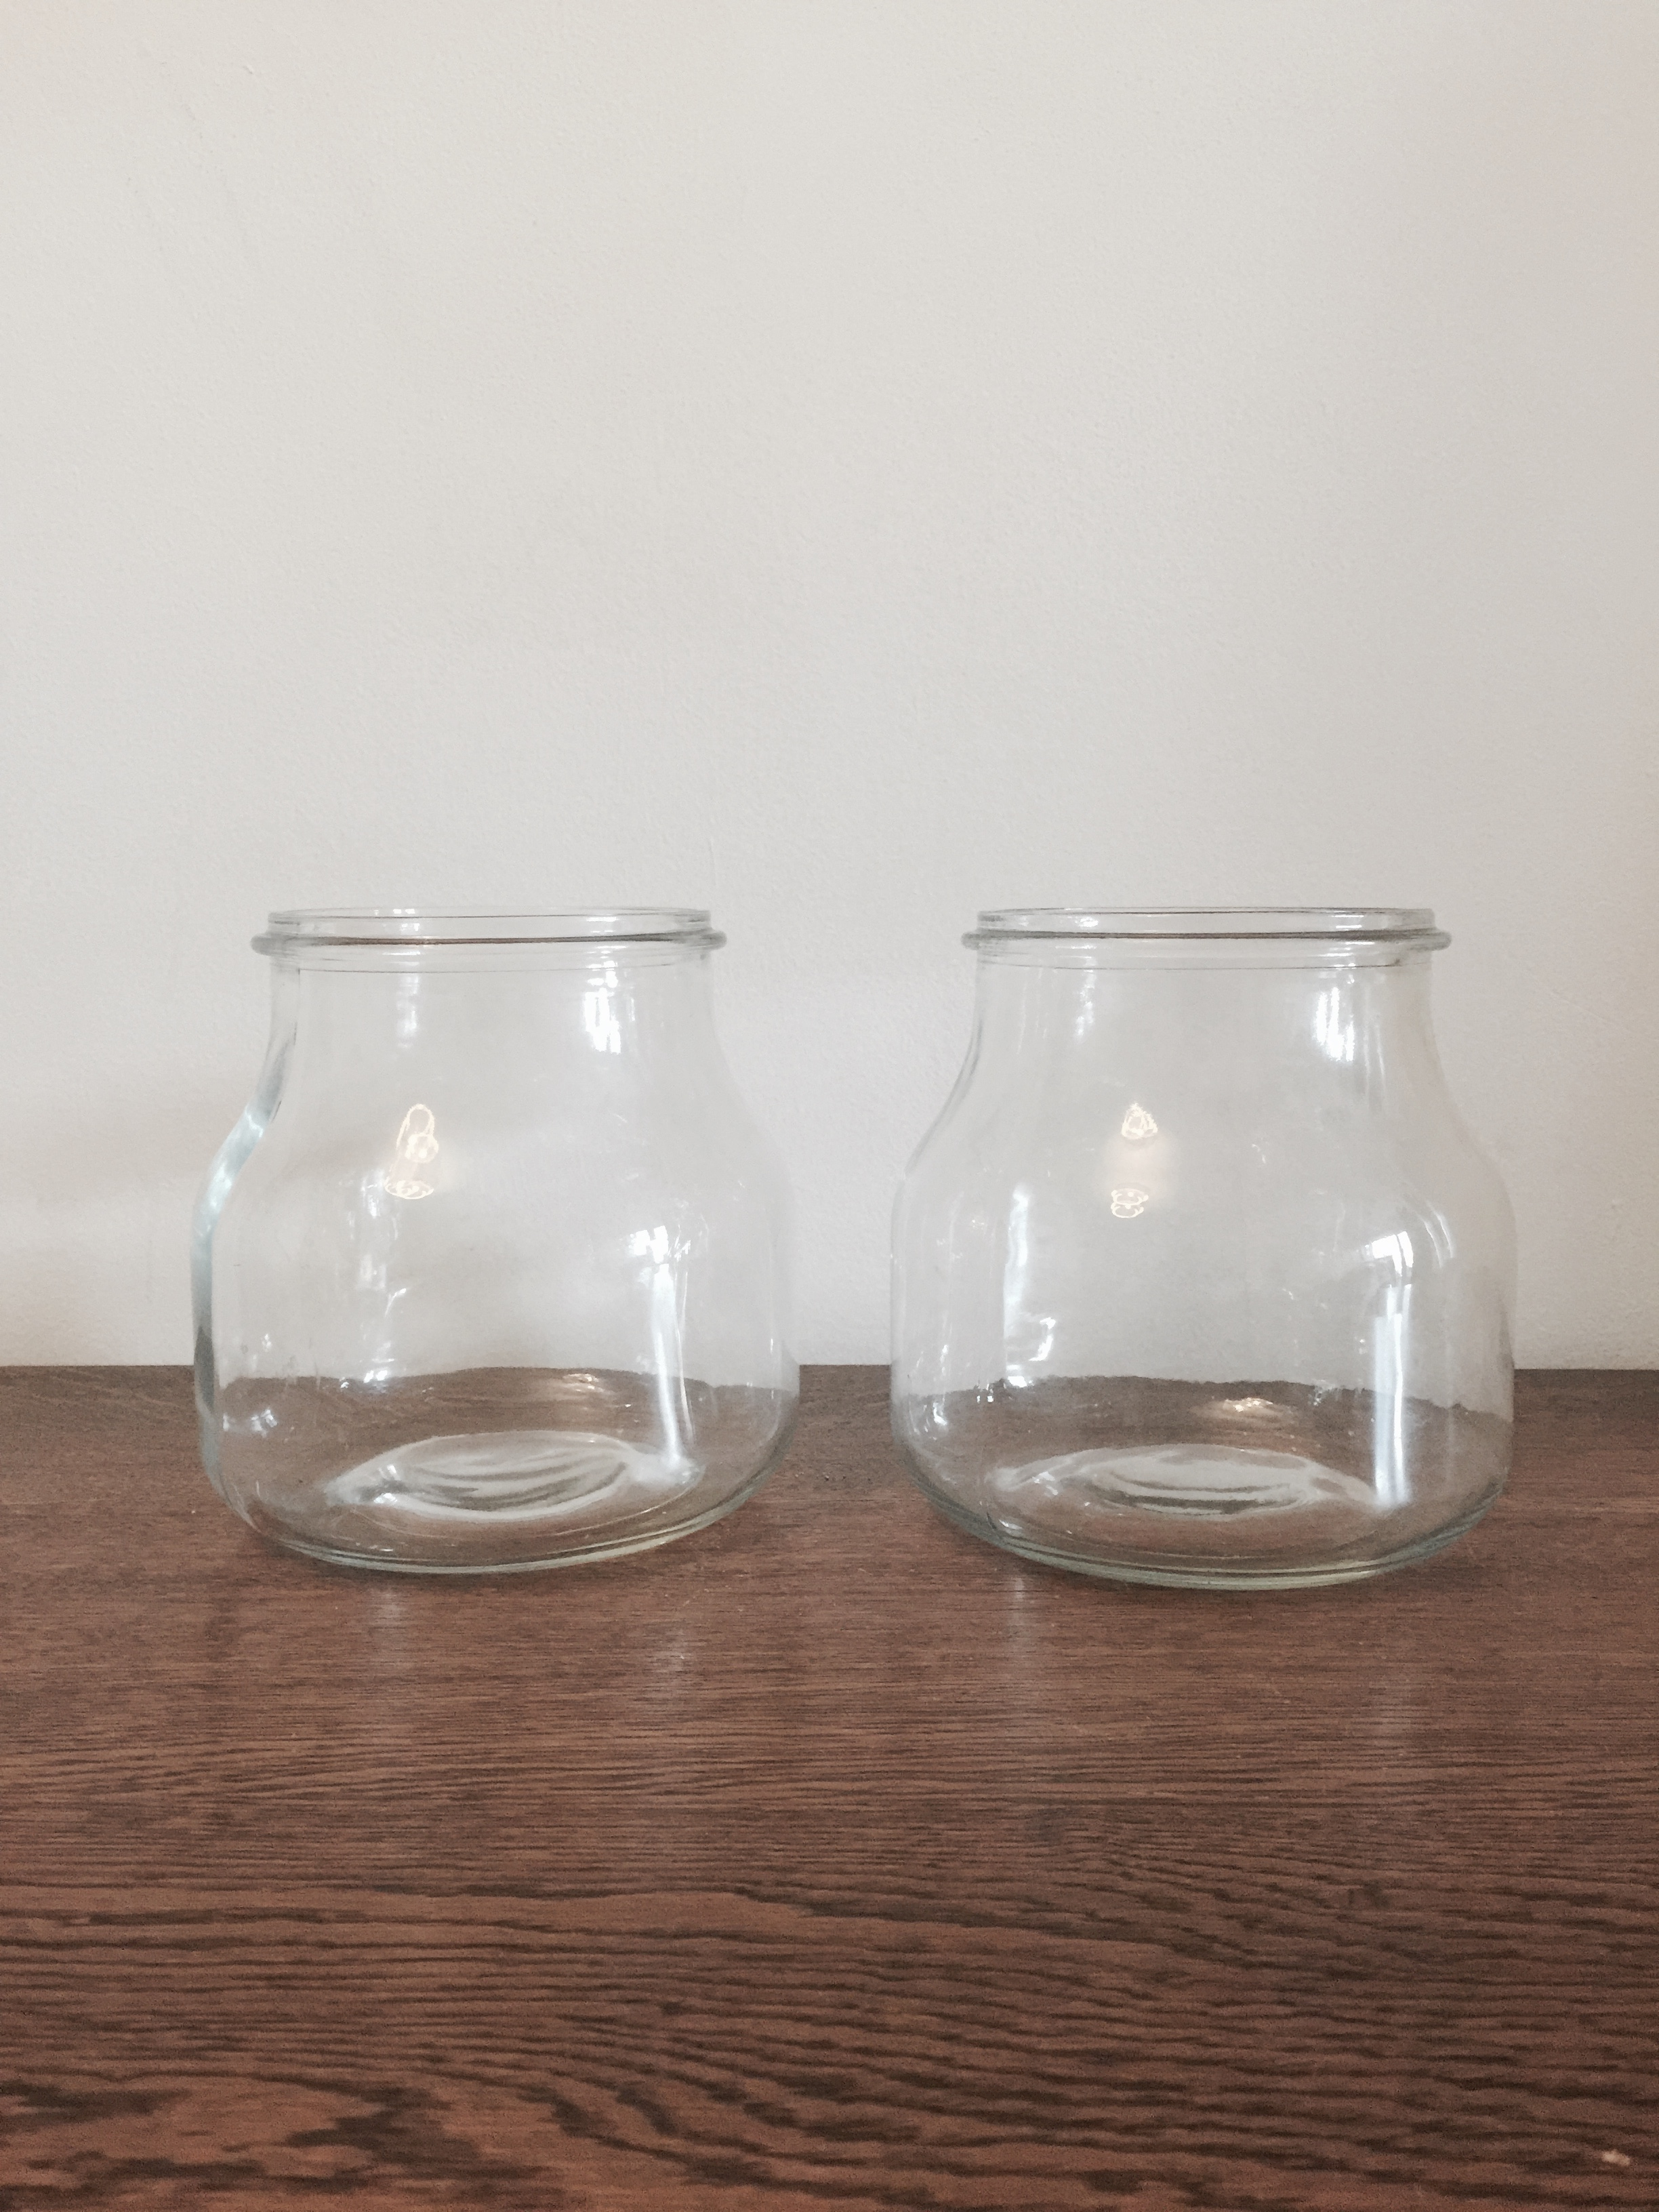 Glass sweet jars £1 each to hire